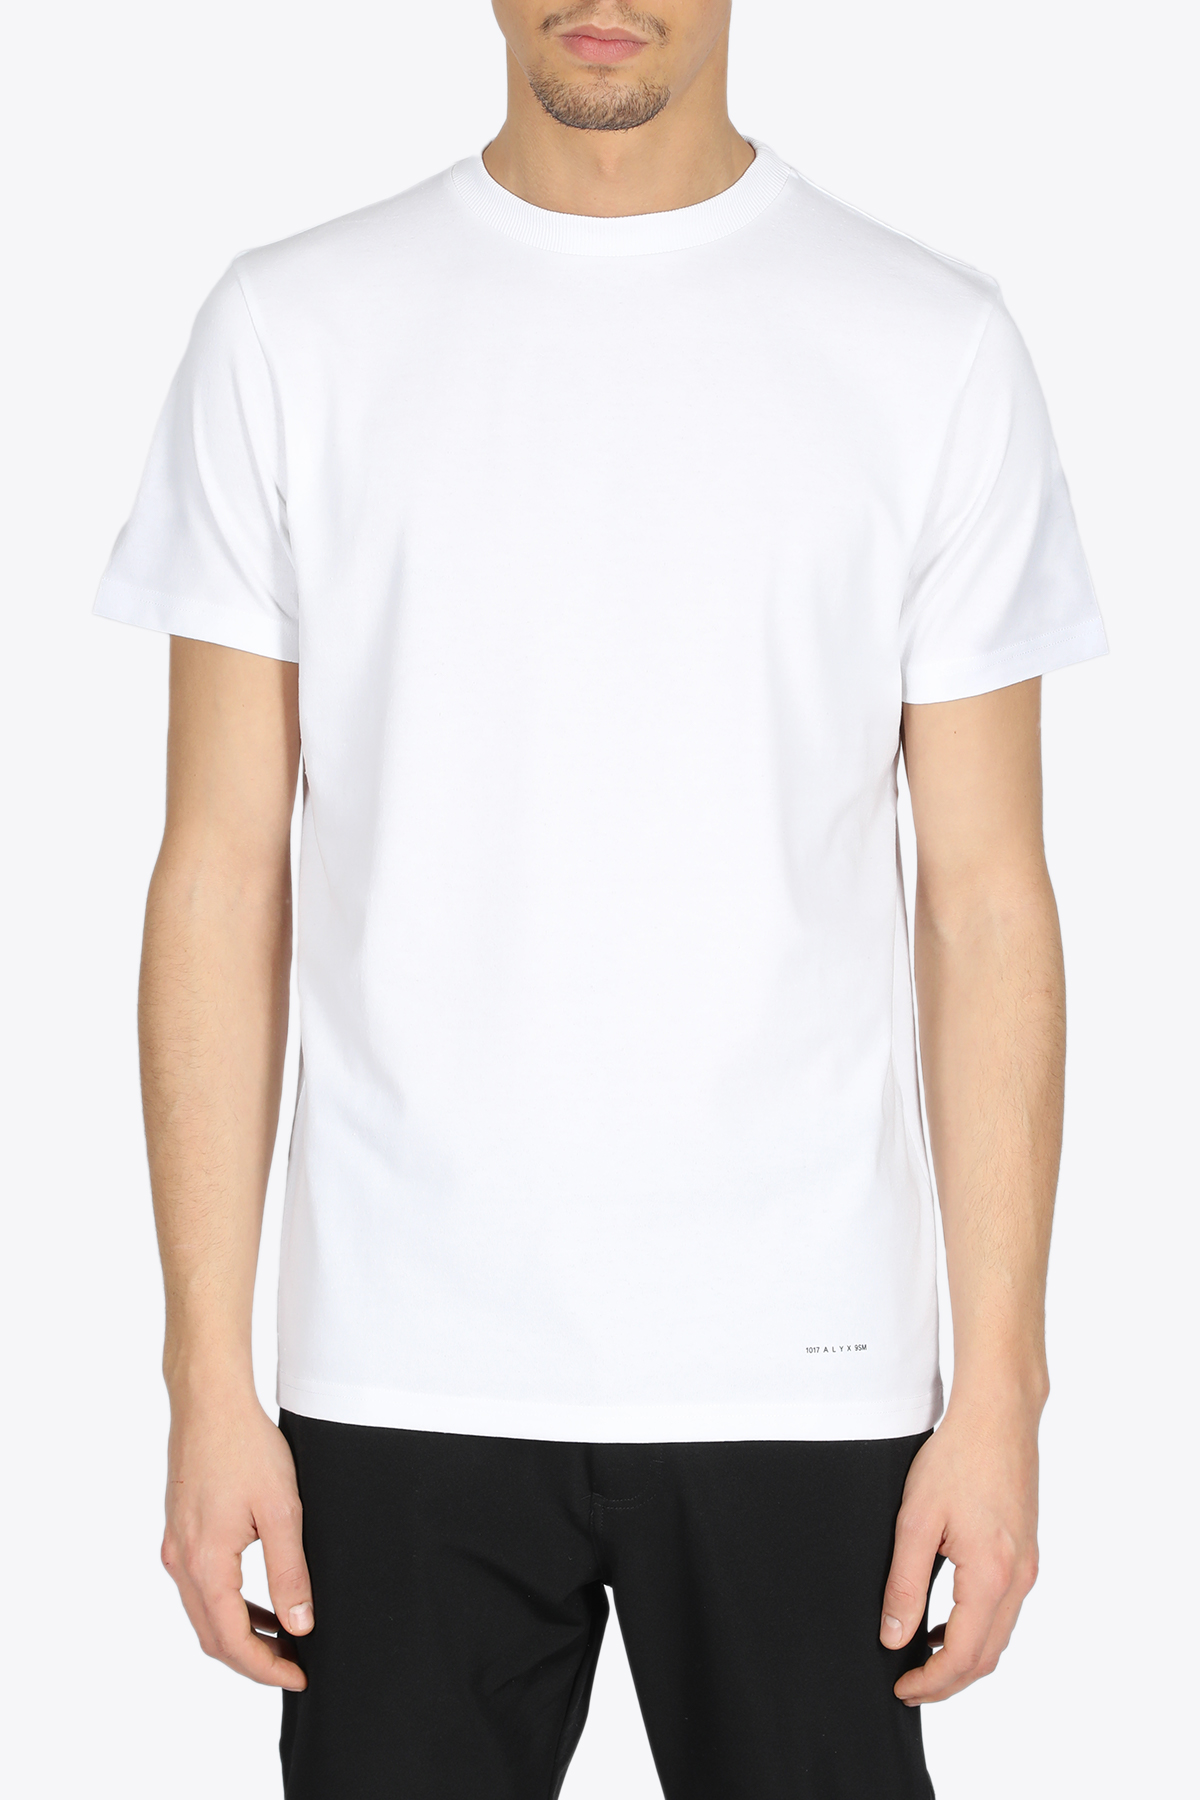 3 PACK T-SHIRT BASIC CON LOGO IN COTONE 1017 ALYX 9SM | 8 | AVUTS0024FA01 3 PACK TEEWHITE/GREY/BLACK